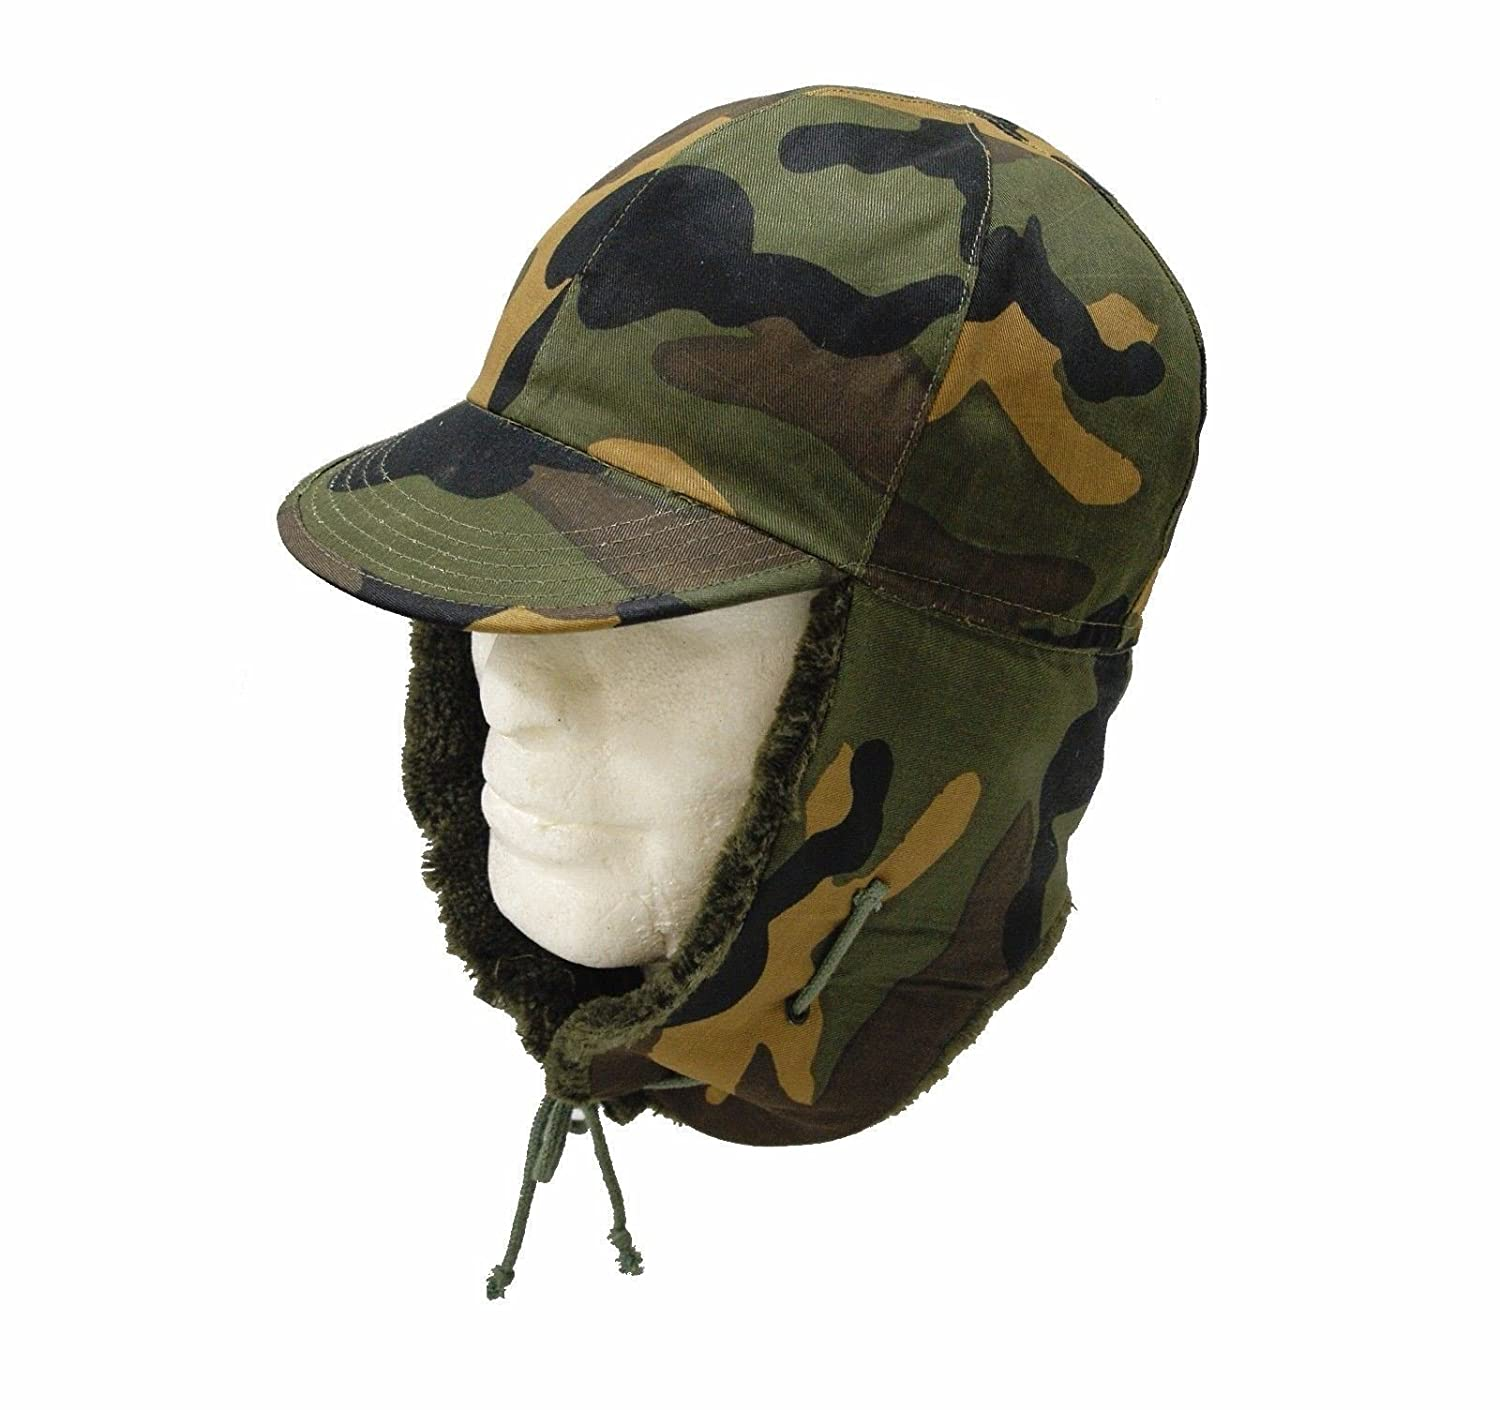 df0639c77 Cobmaster Brand New Warm Military Army Trapper Hat Foreign Legion Cold  Weather Winter Cap